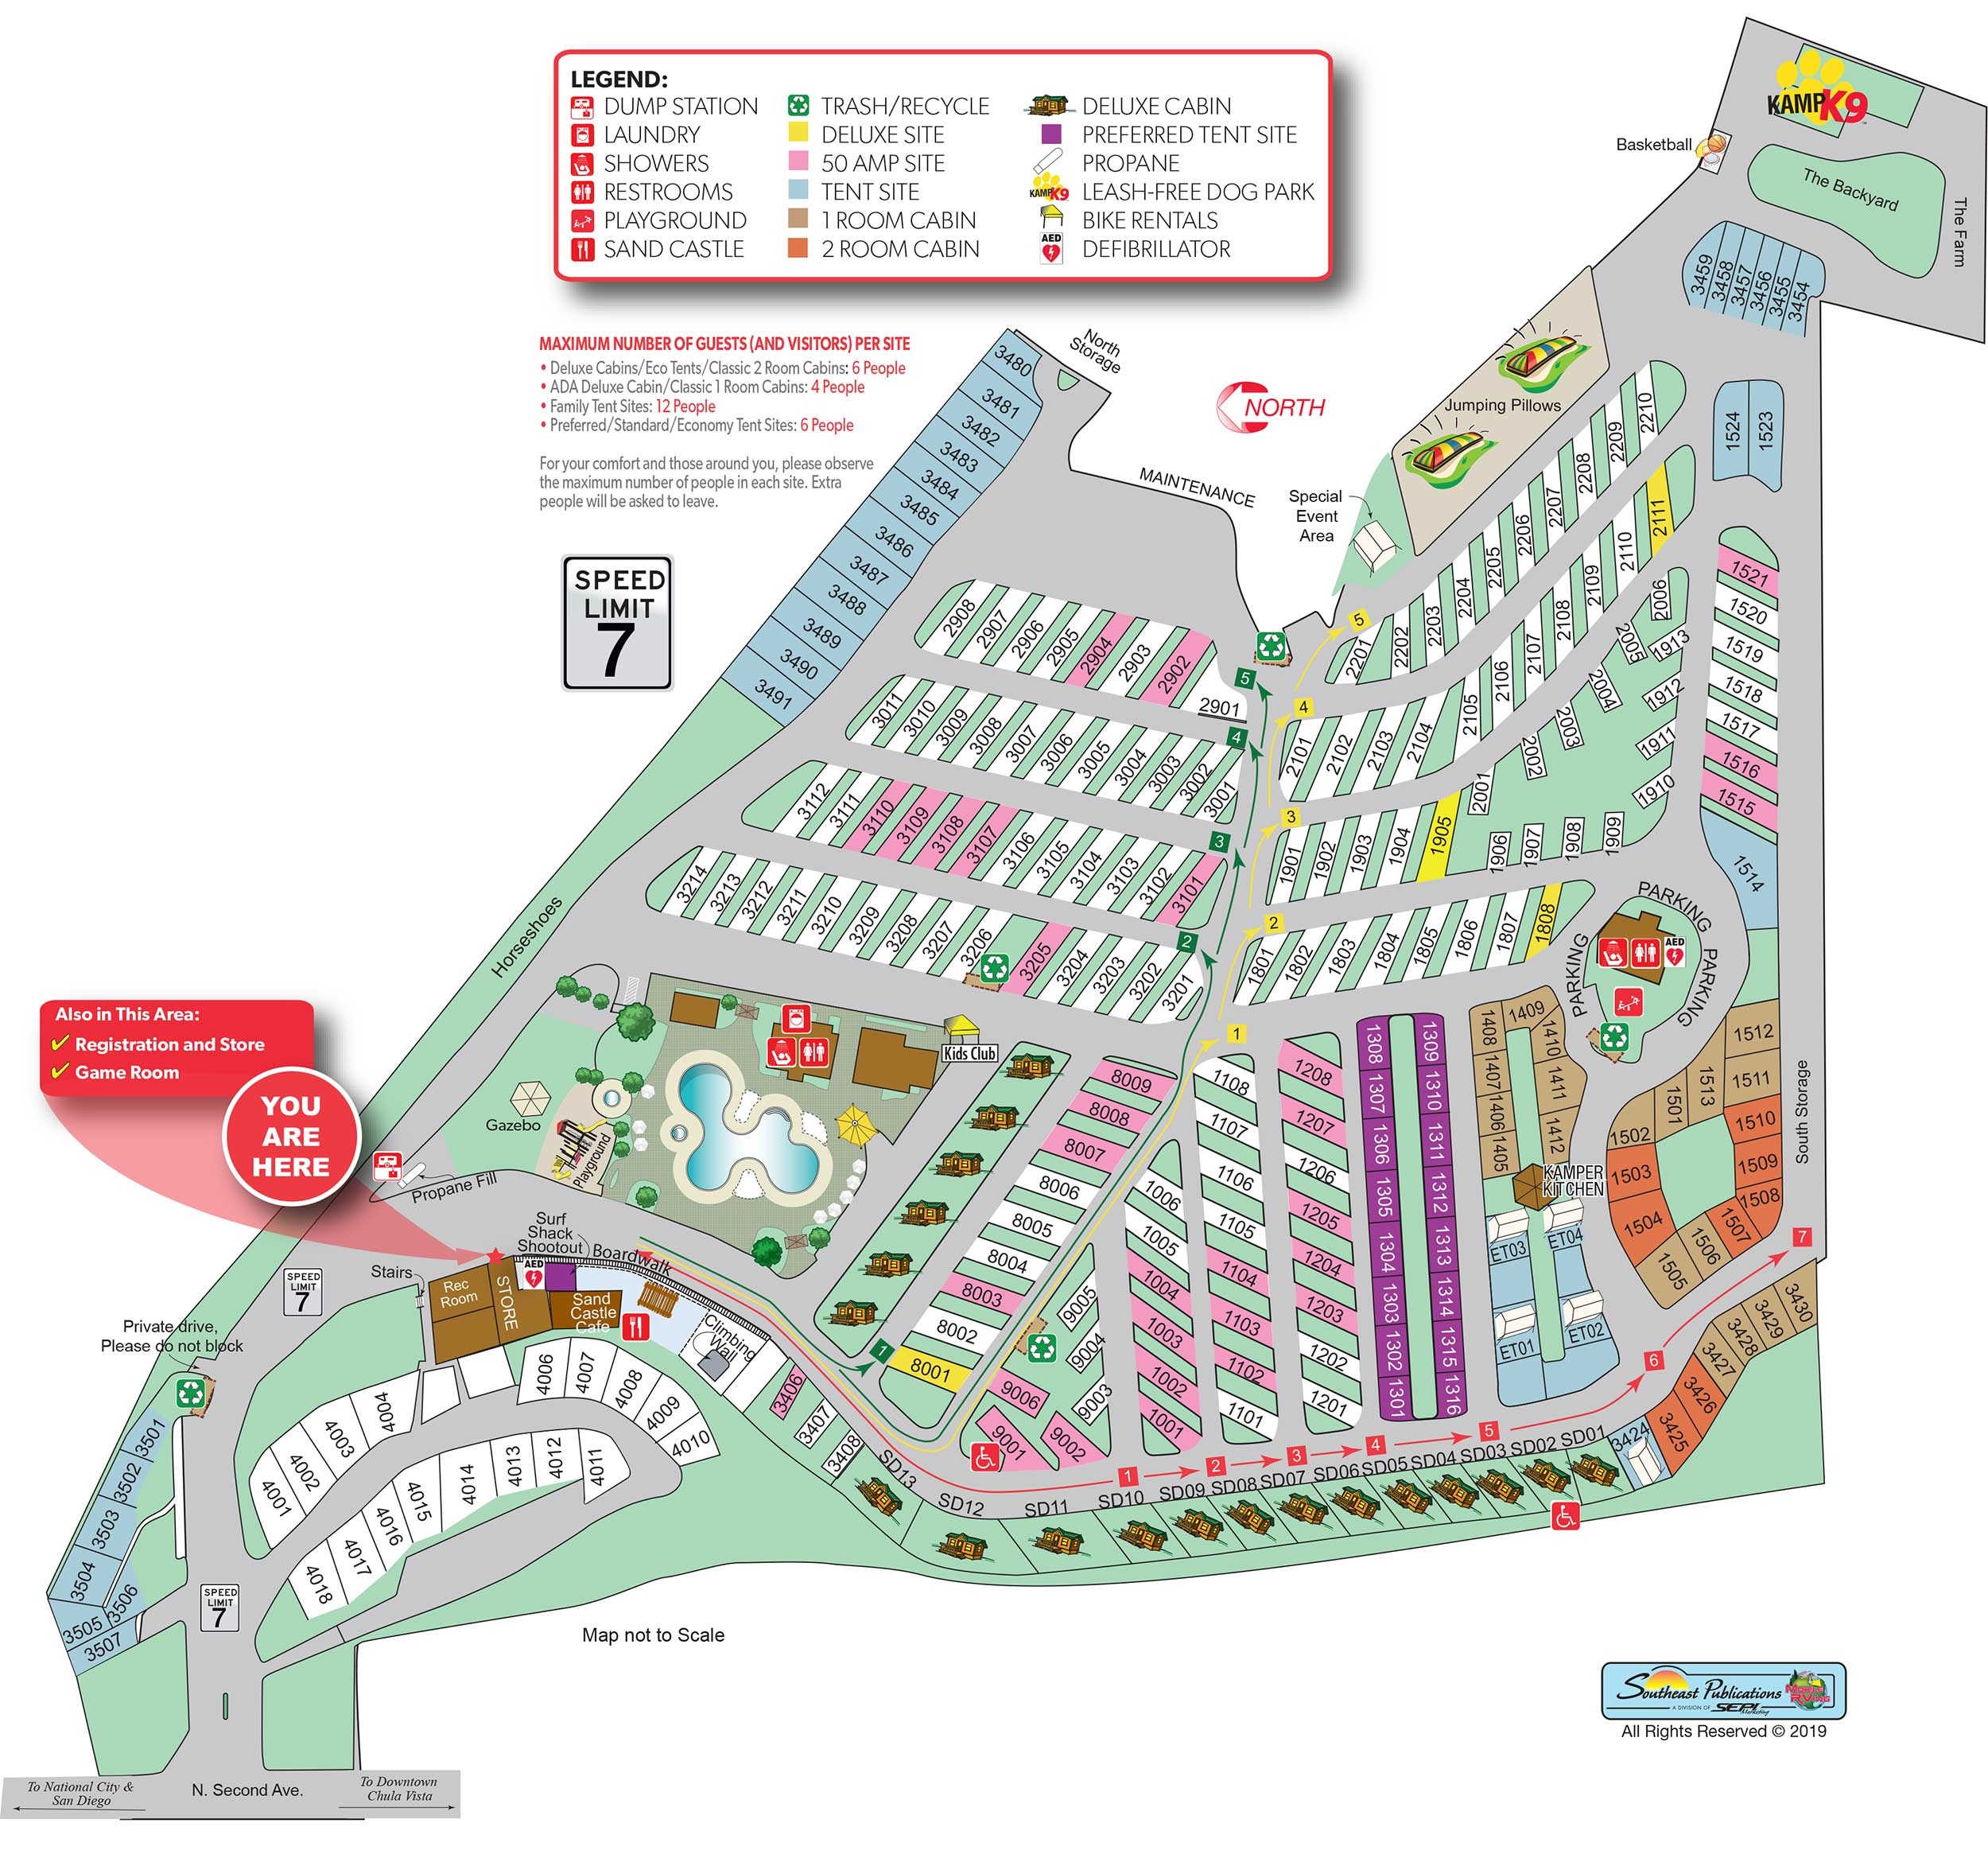 Chula Vista, California Campground | San go Metro KOA on okc zoo map, sandiego zoo map, seaworld san diego map, sac zoo map,